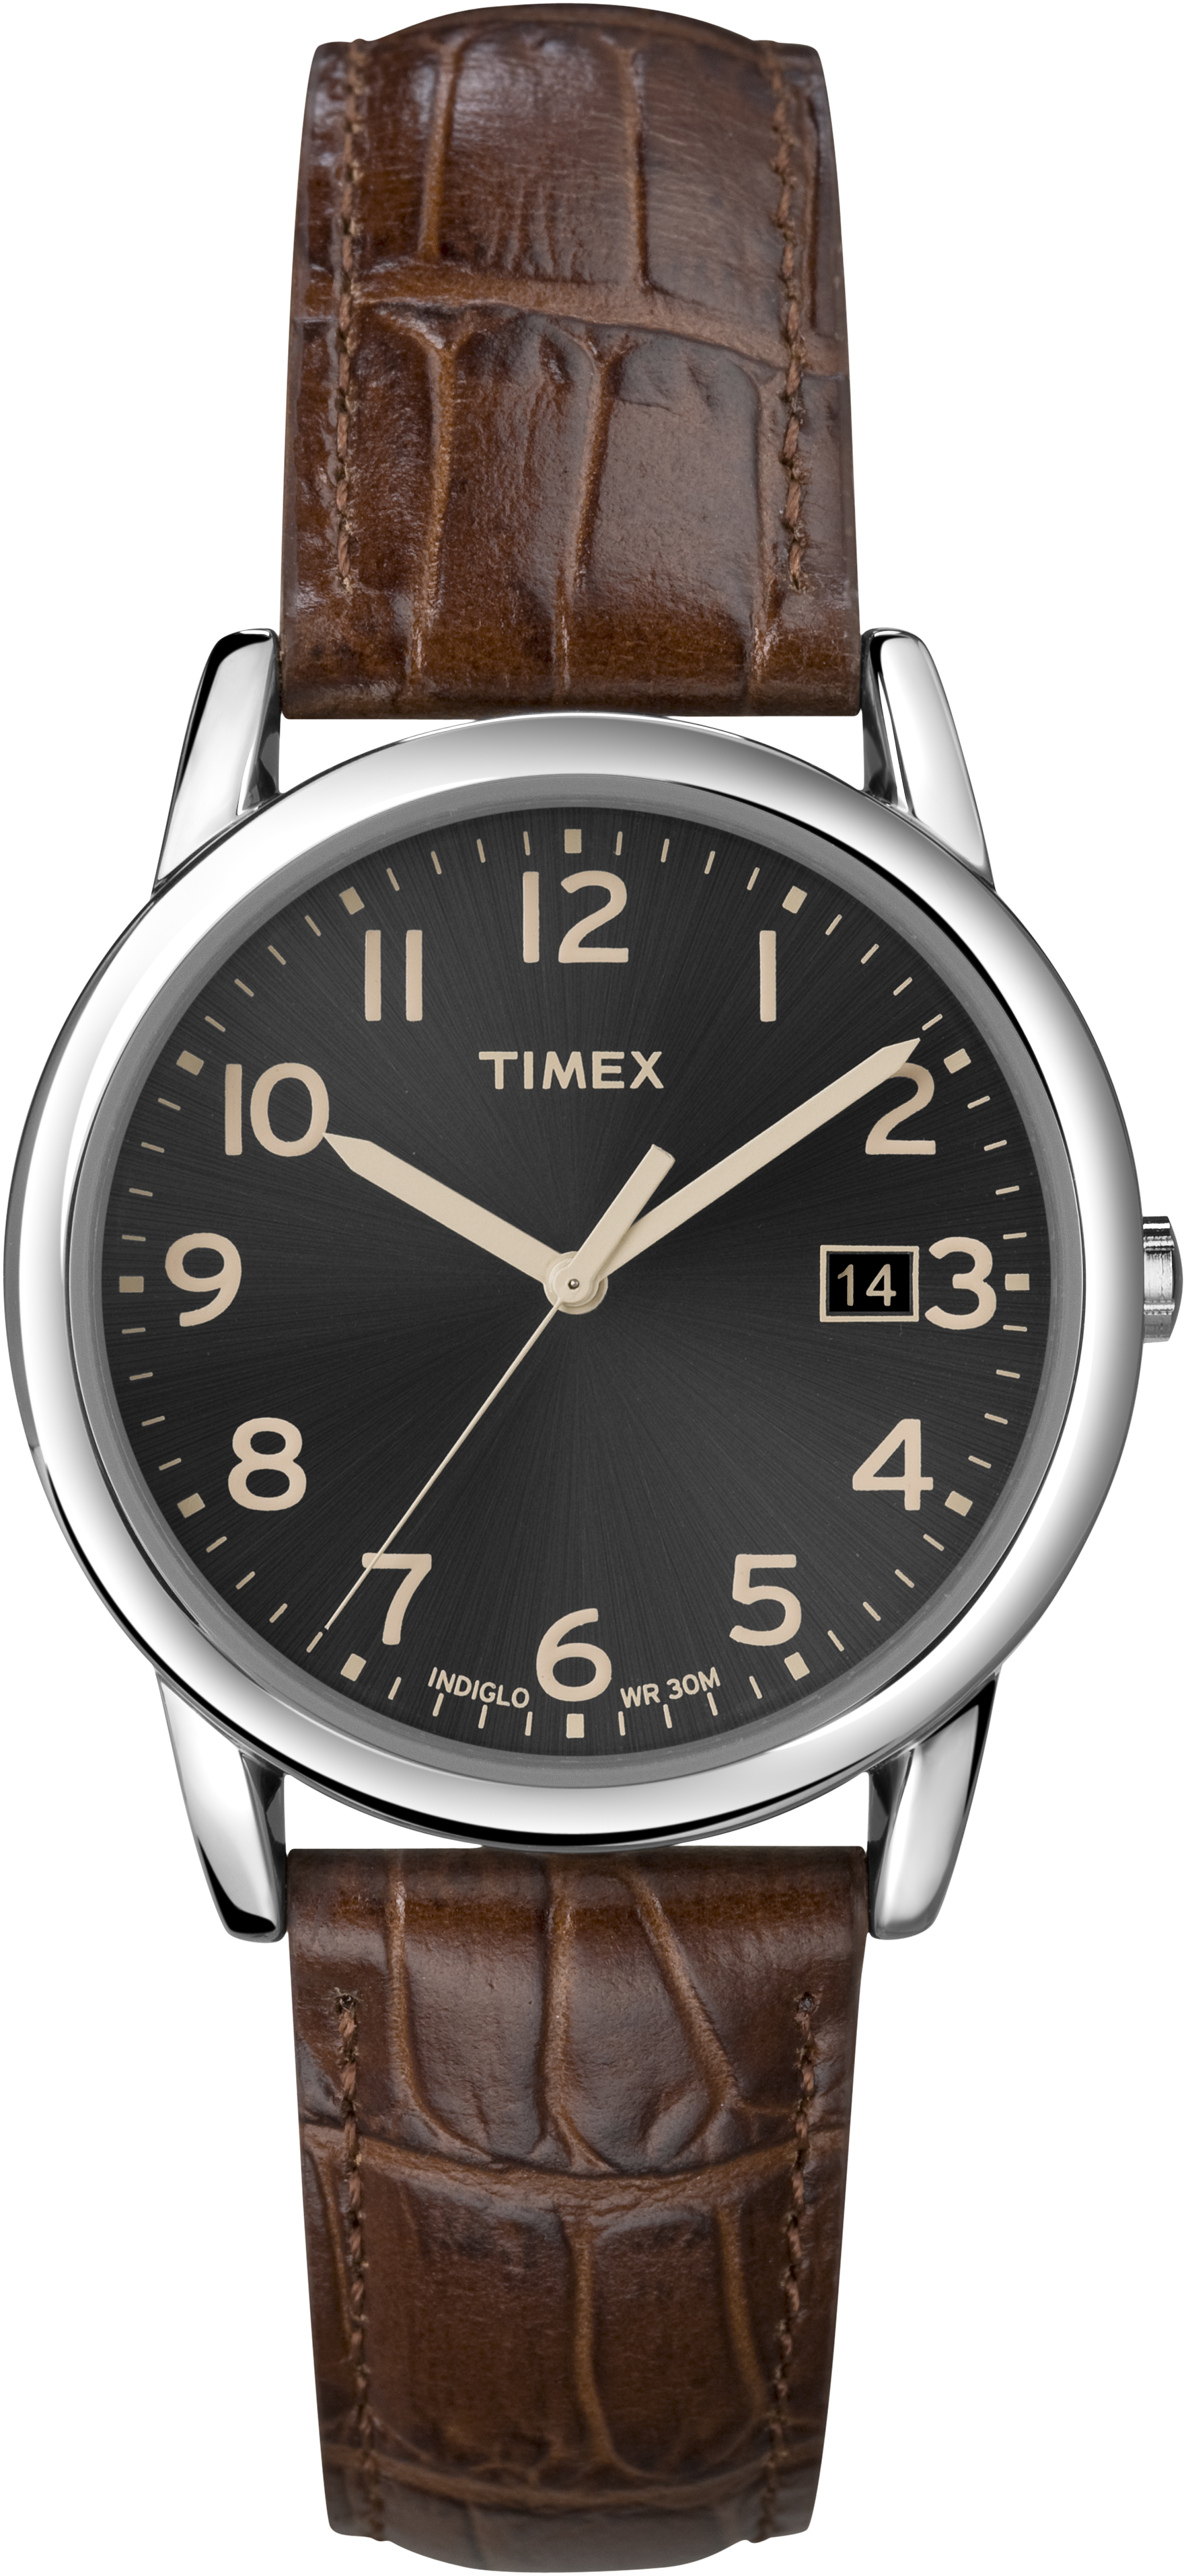 Timex men 39 s south street leather band white dial indiglo casual dress watch for Indiglo watches